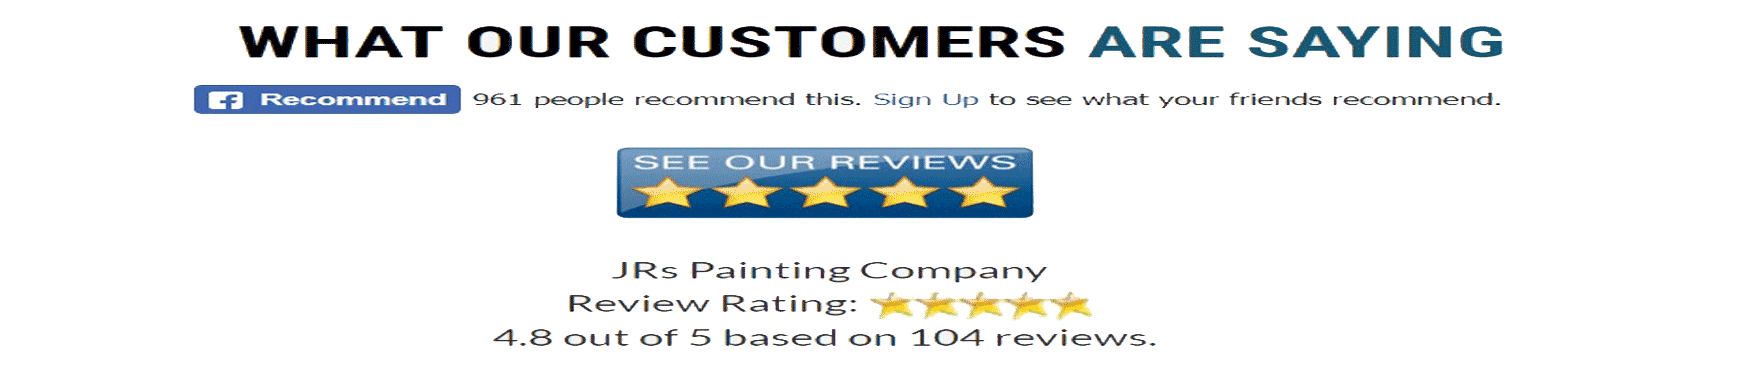 jrs painting company overland park ks - facebook profile